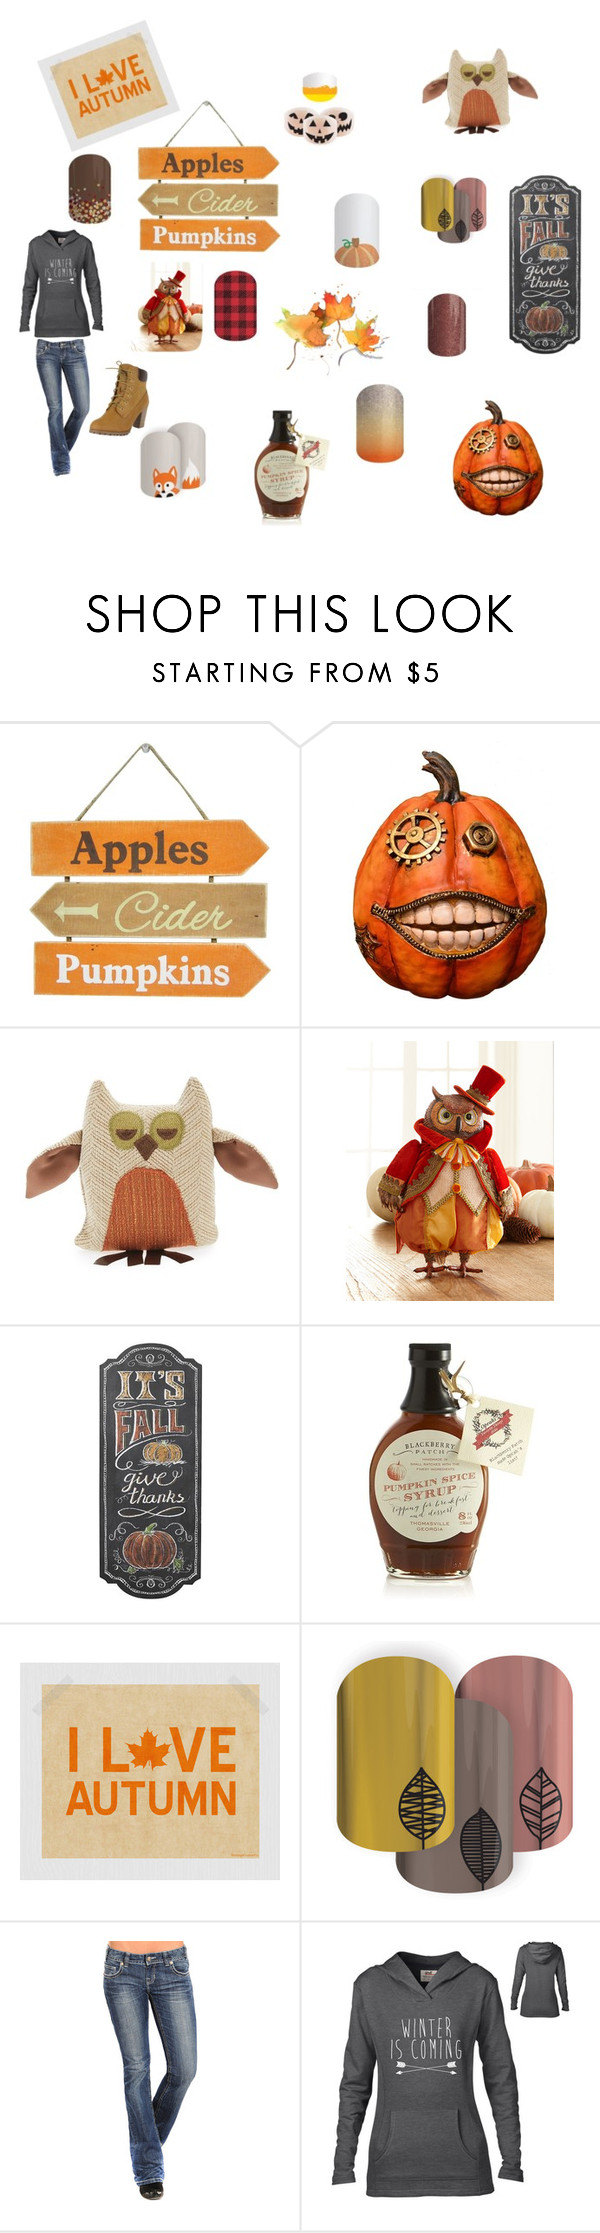 Autumn by conniepatterson on Polyvore featuring Fantastic Craft, Woof & Poof, Crate and Barrel and Katherine's Collection